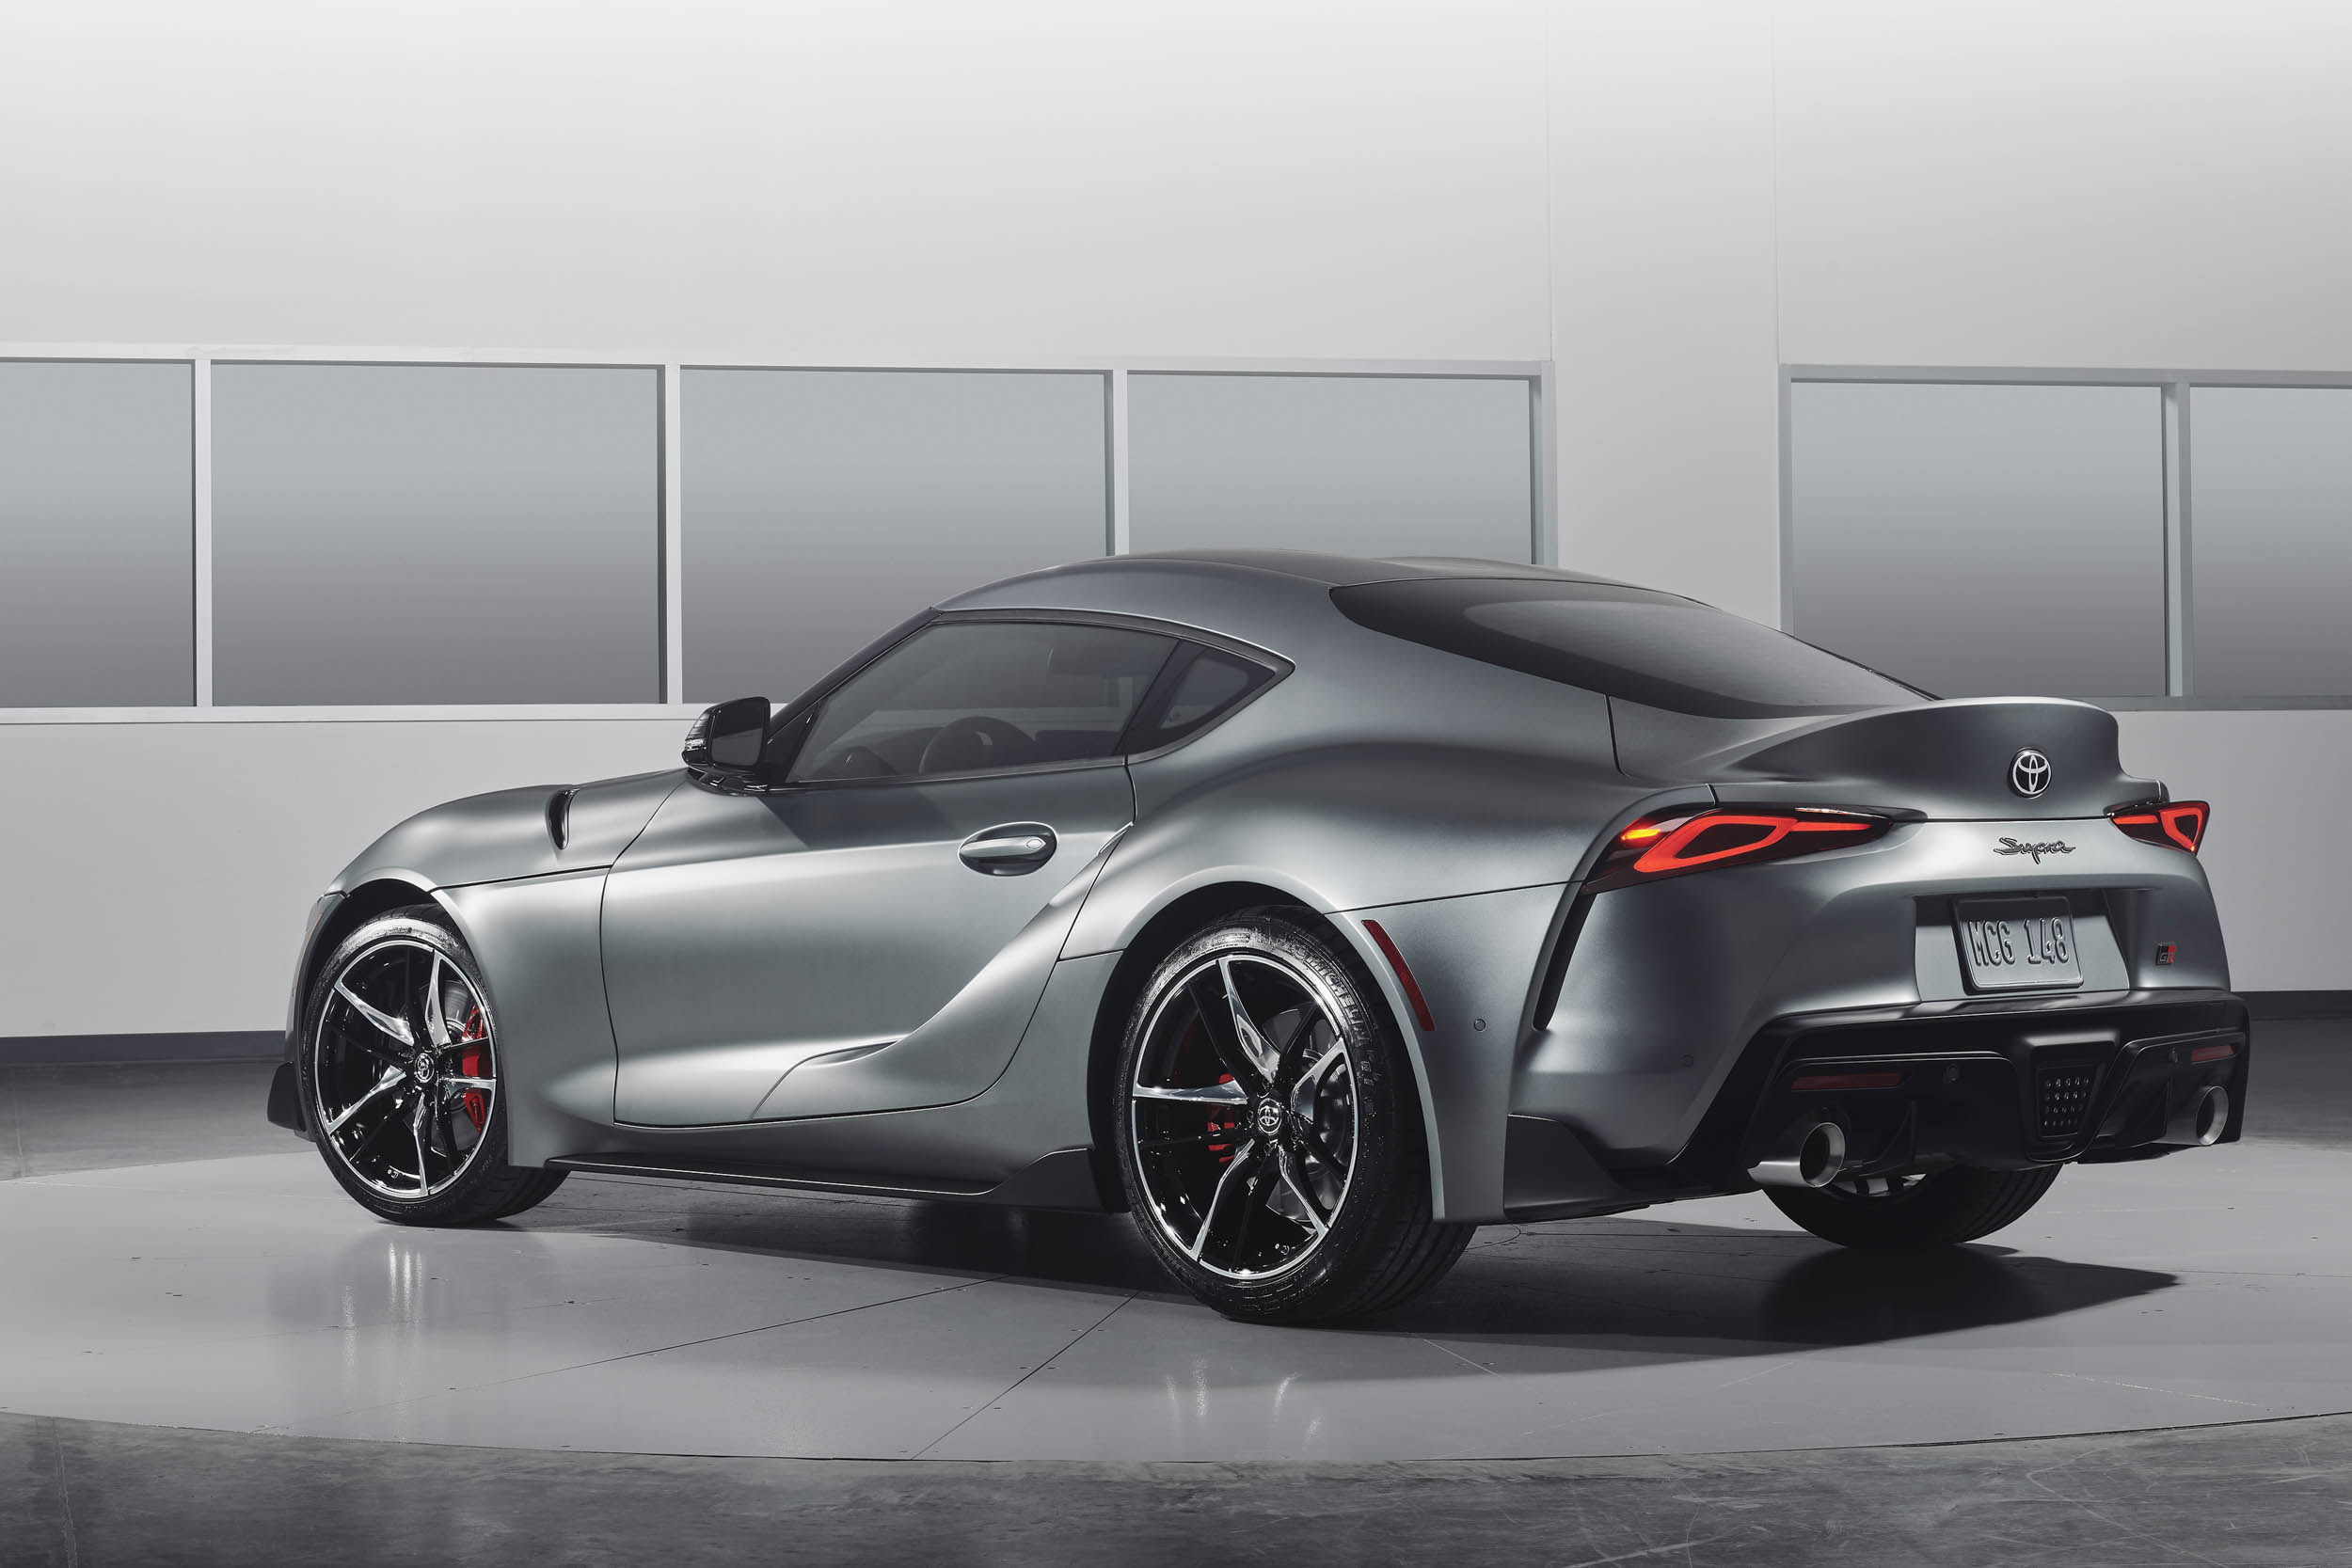 2020 Toyota Supra Matte Grey rear 3/4